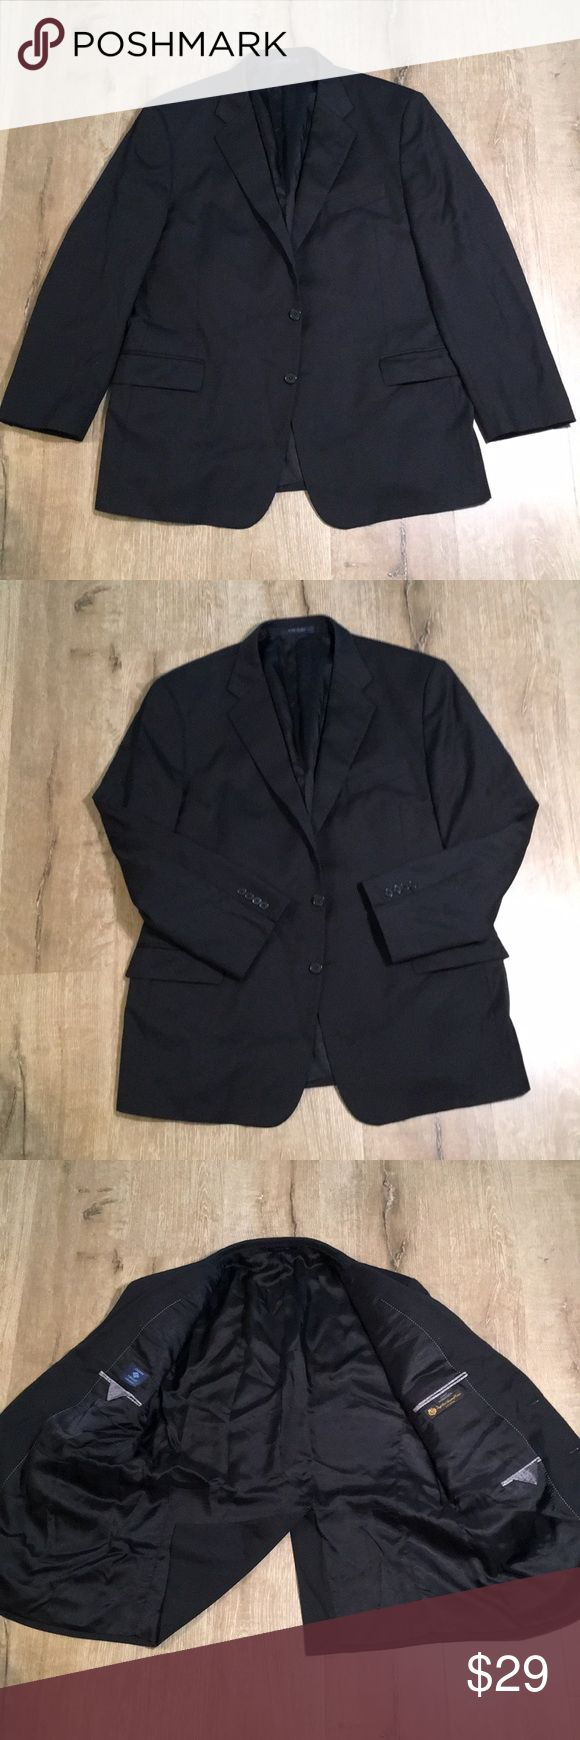 """ANWOT 48L Joseph Abboud Nordstrom Blazer 💰💰 25.5"""" Shoulder to wrist. 32"""" collar to hem.  26"""" underarm to underarm. Gorgeous fabric and stylish cut.  Luxury brand.  Almost new without tags. No signs of wear Nordstrom Suits & Blazers Sport Coats & Blazers"""